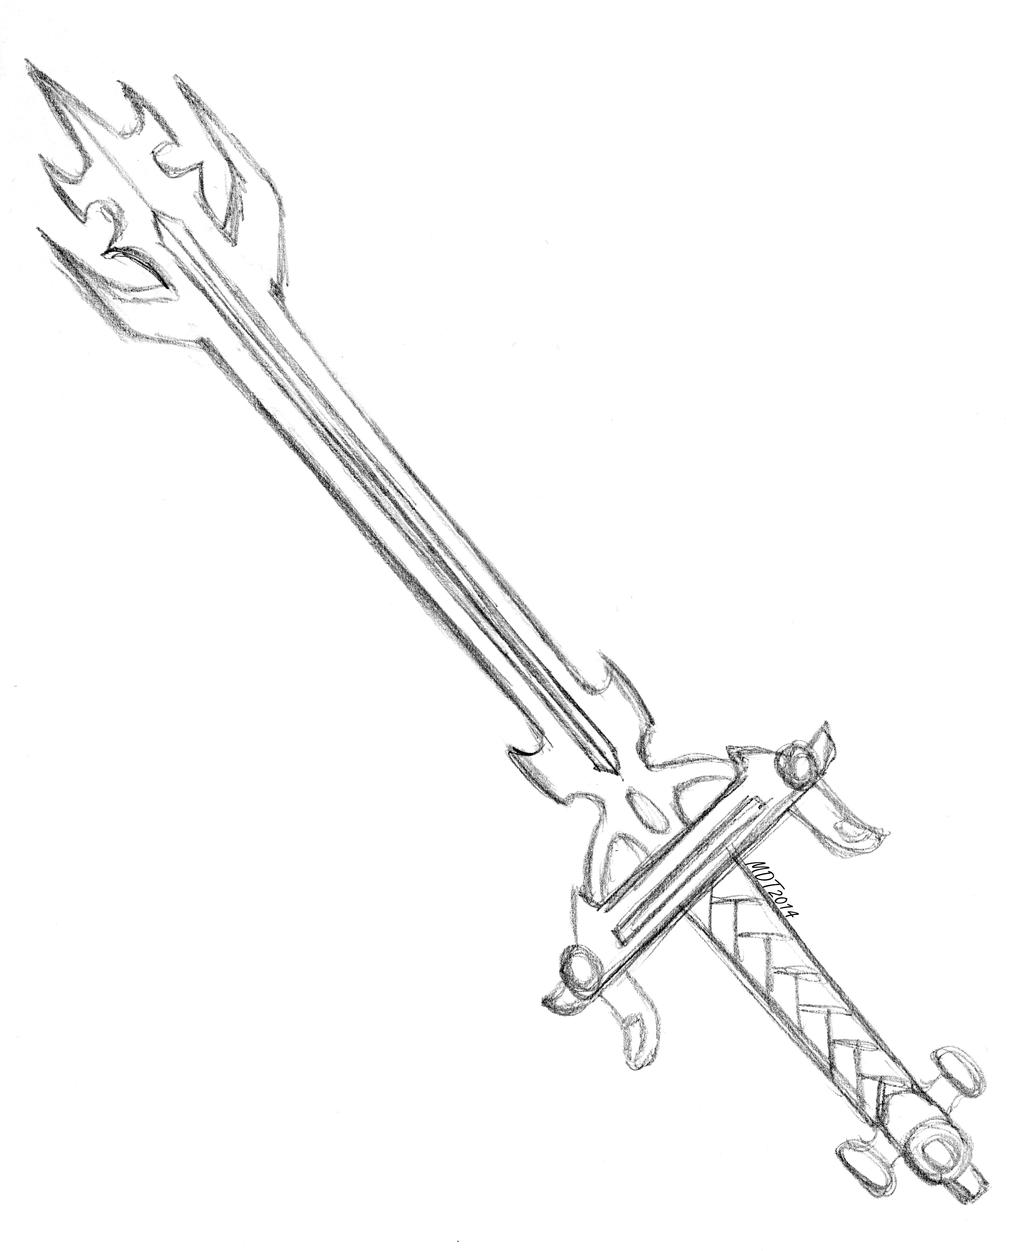 Lion Voltron's Sword by MDTartist83 on DeviantArt